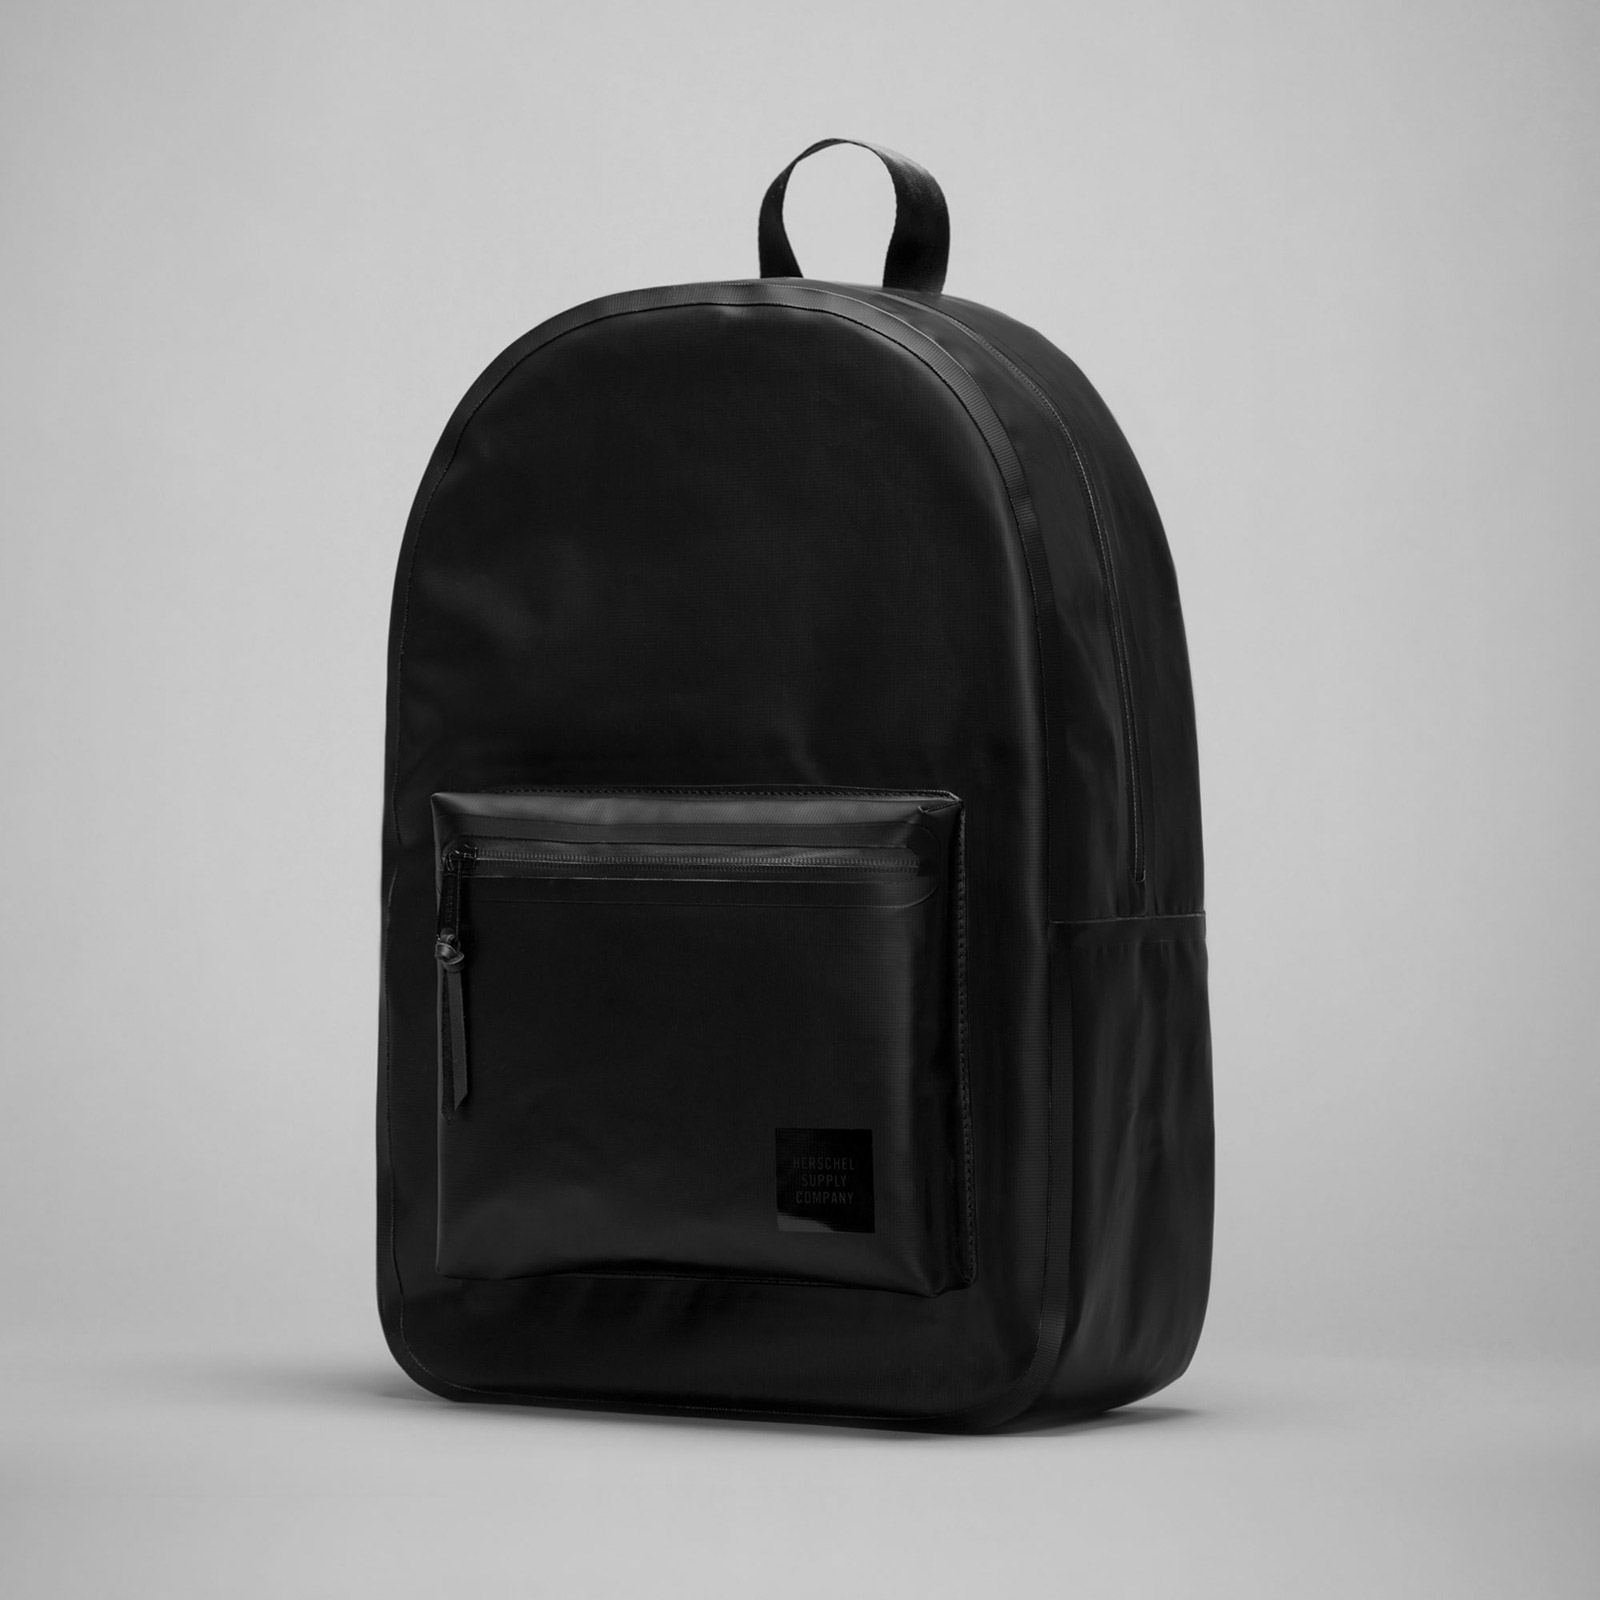 Herschel Backpacks Waterproof 02g6wy34